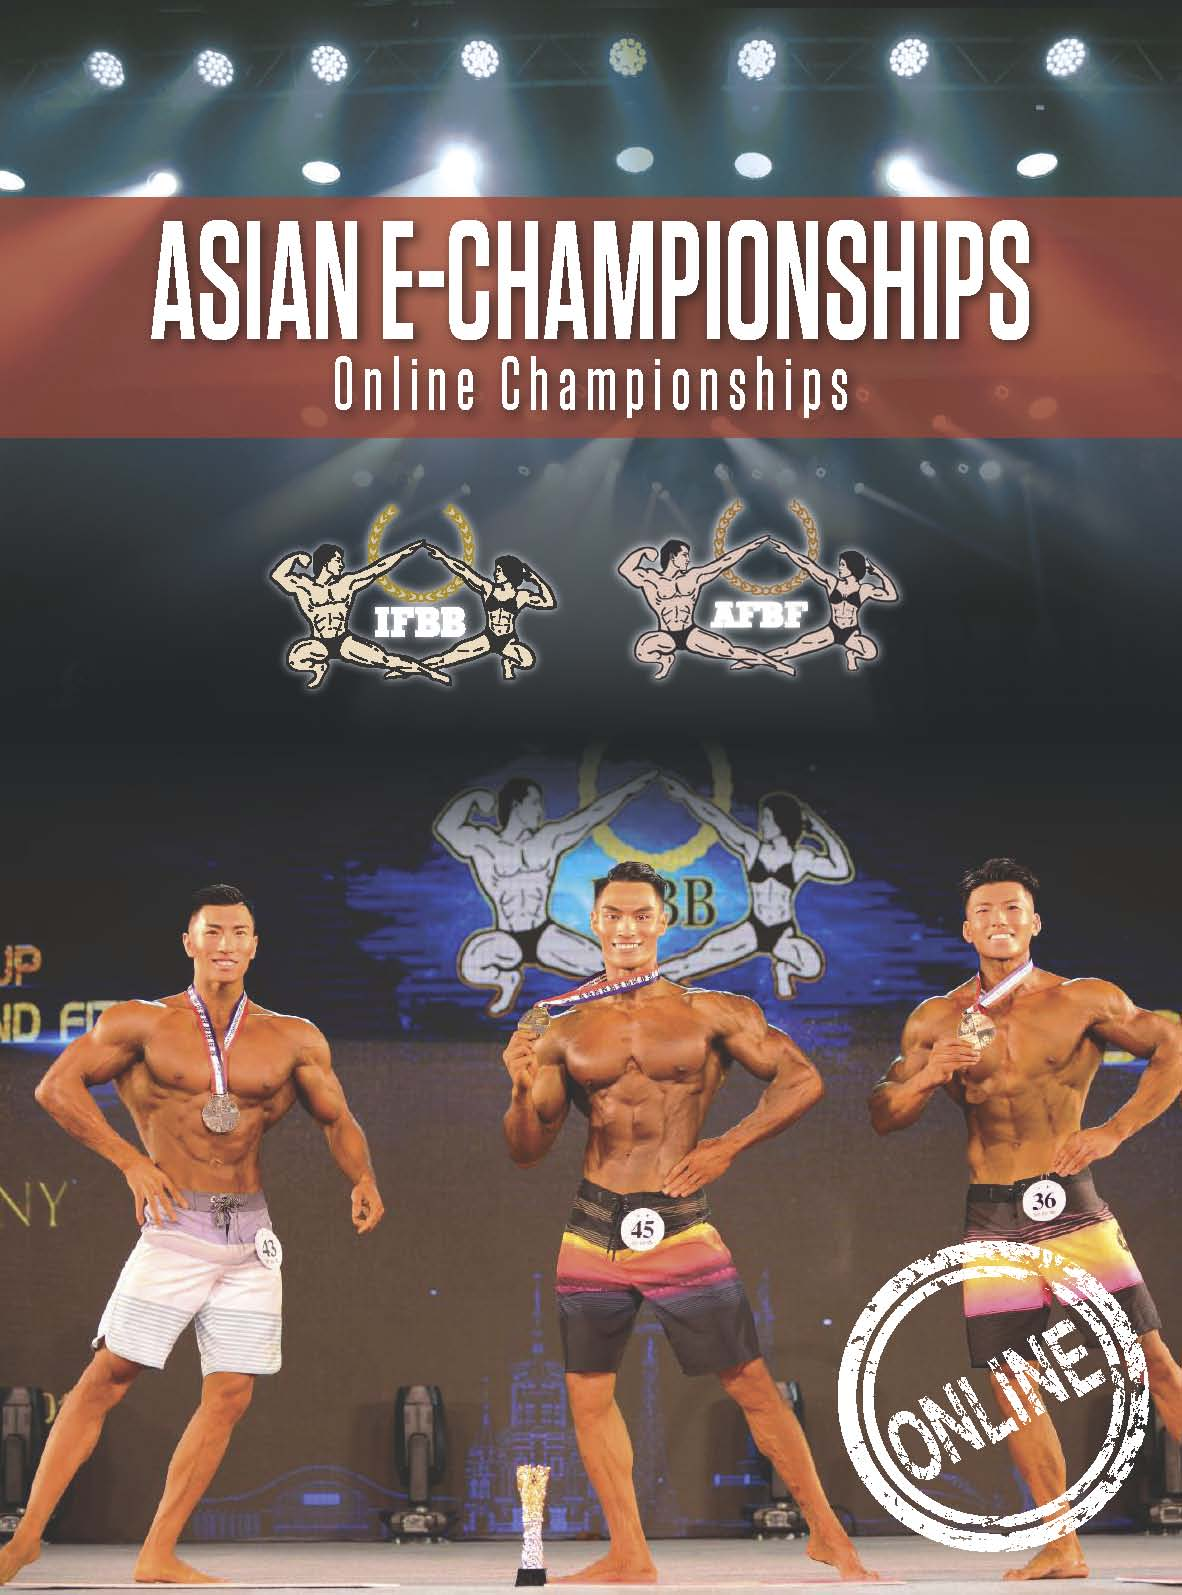 Asian IFBB Online e-Championships